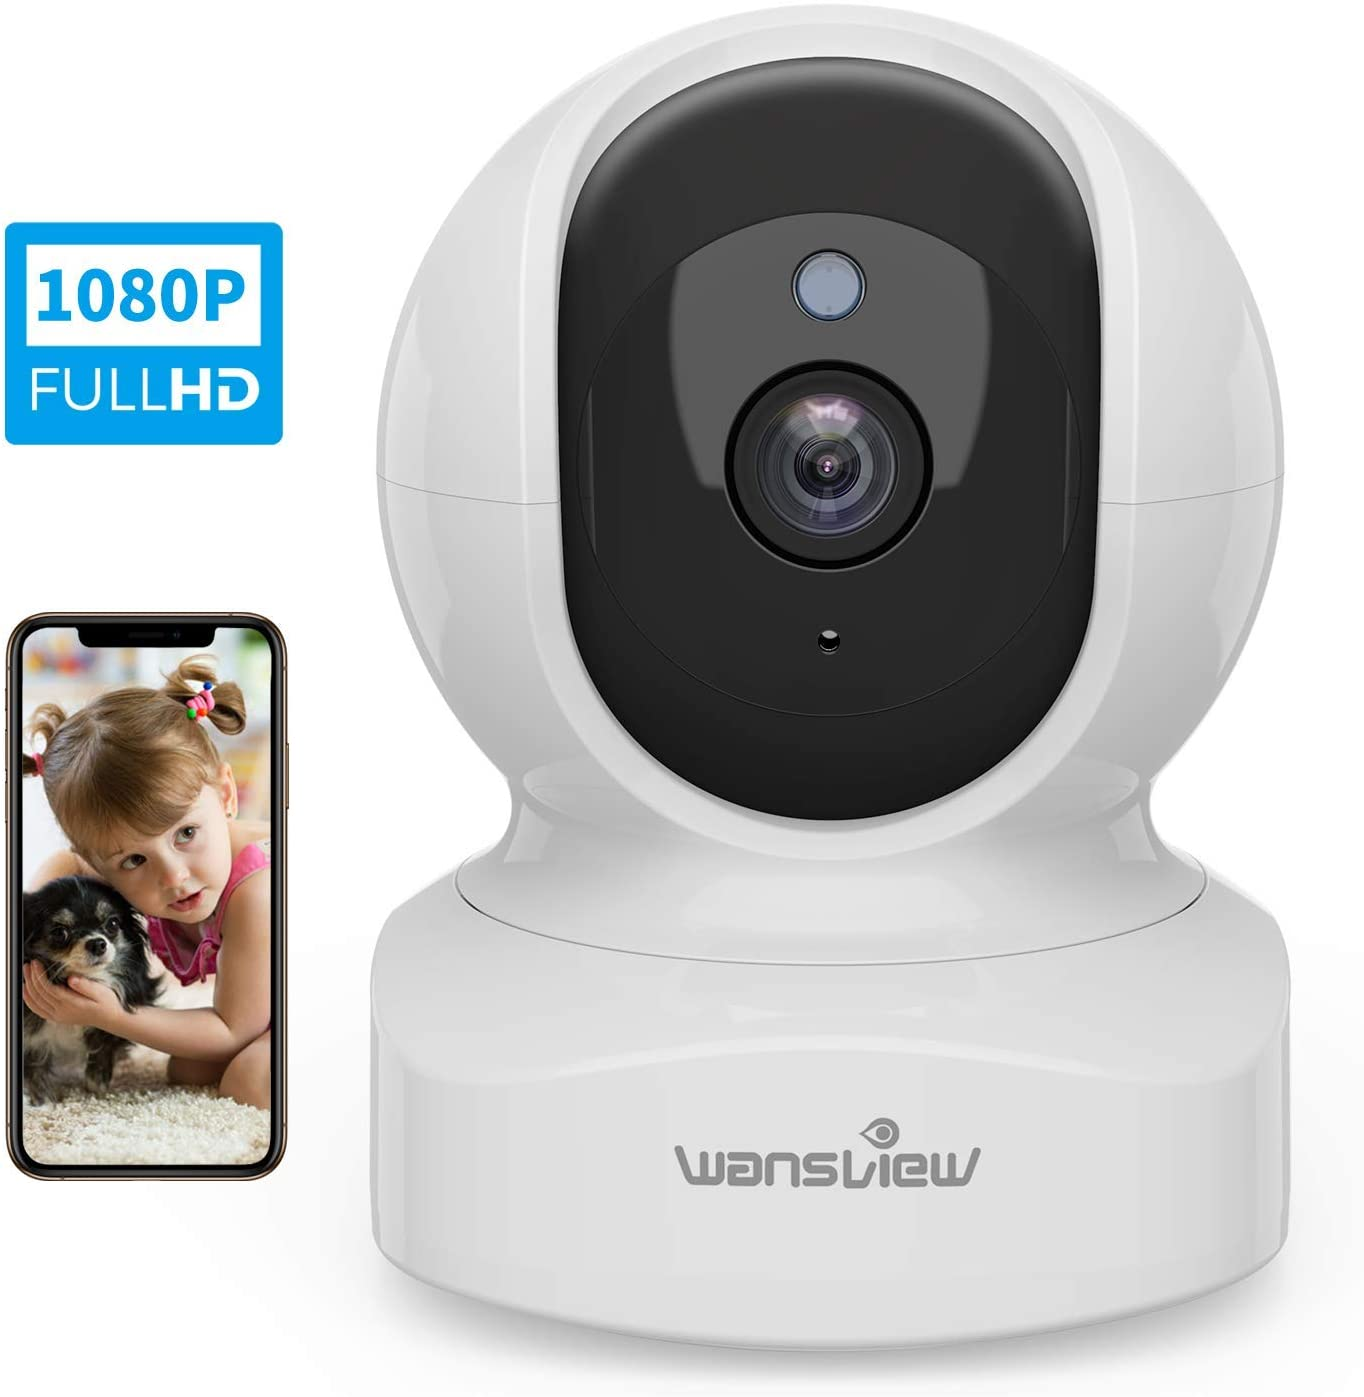 Wansview Wireless Security Camera, IP Camera 1080P HD, WiFi Home Indoor Camera for Baby/Pet/Nanny, Motion Detection, 2 Way Audio Night Vision, Works with Alexa, with TF Card Slot and Cloud